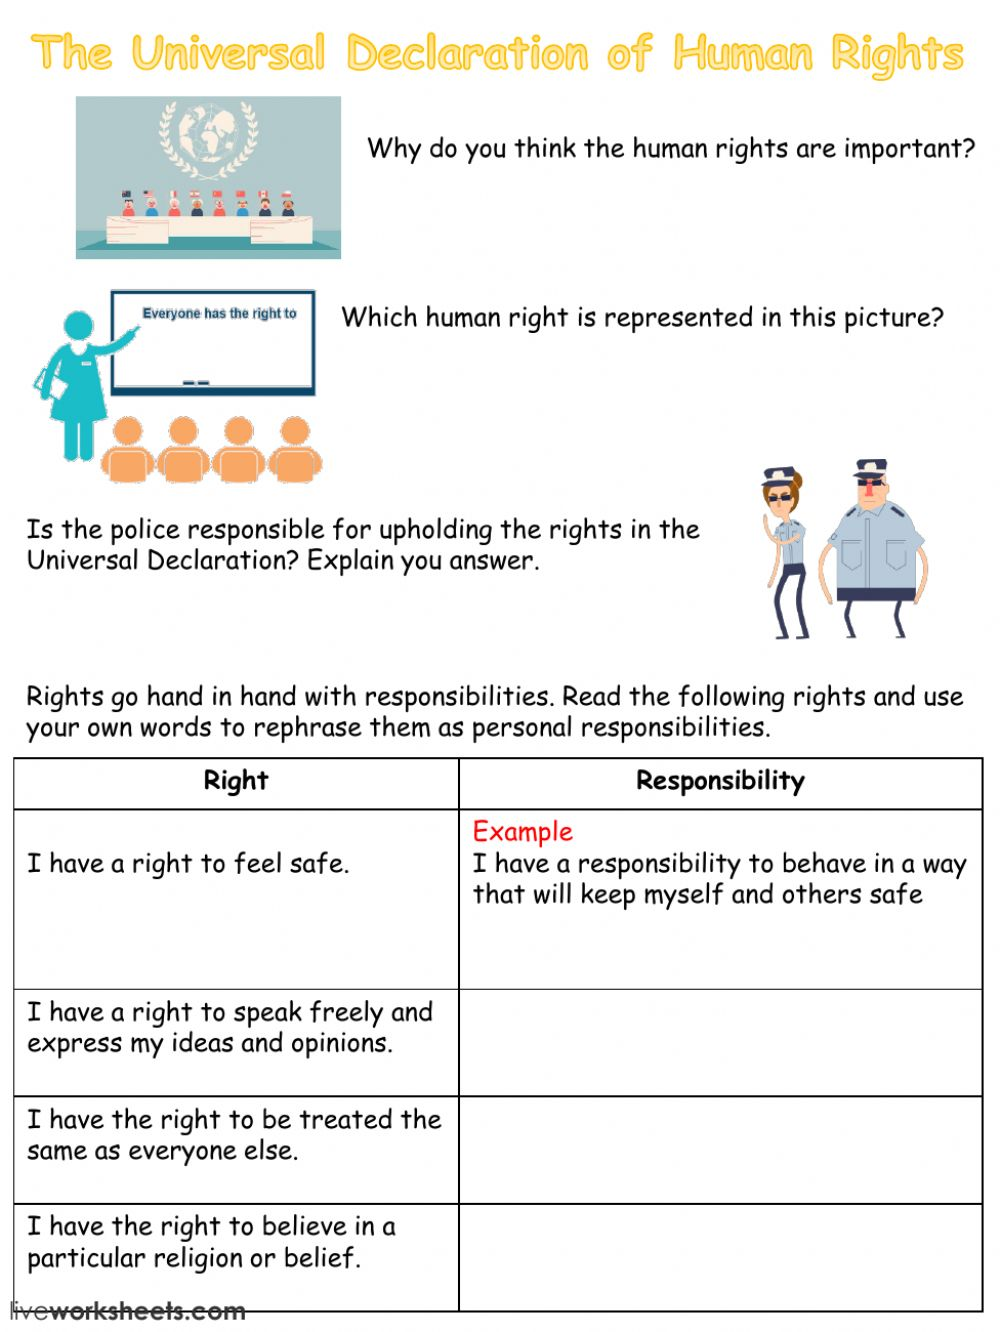 personal responsibility worksheets - Ideal.vistalist.co